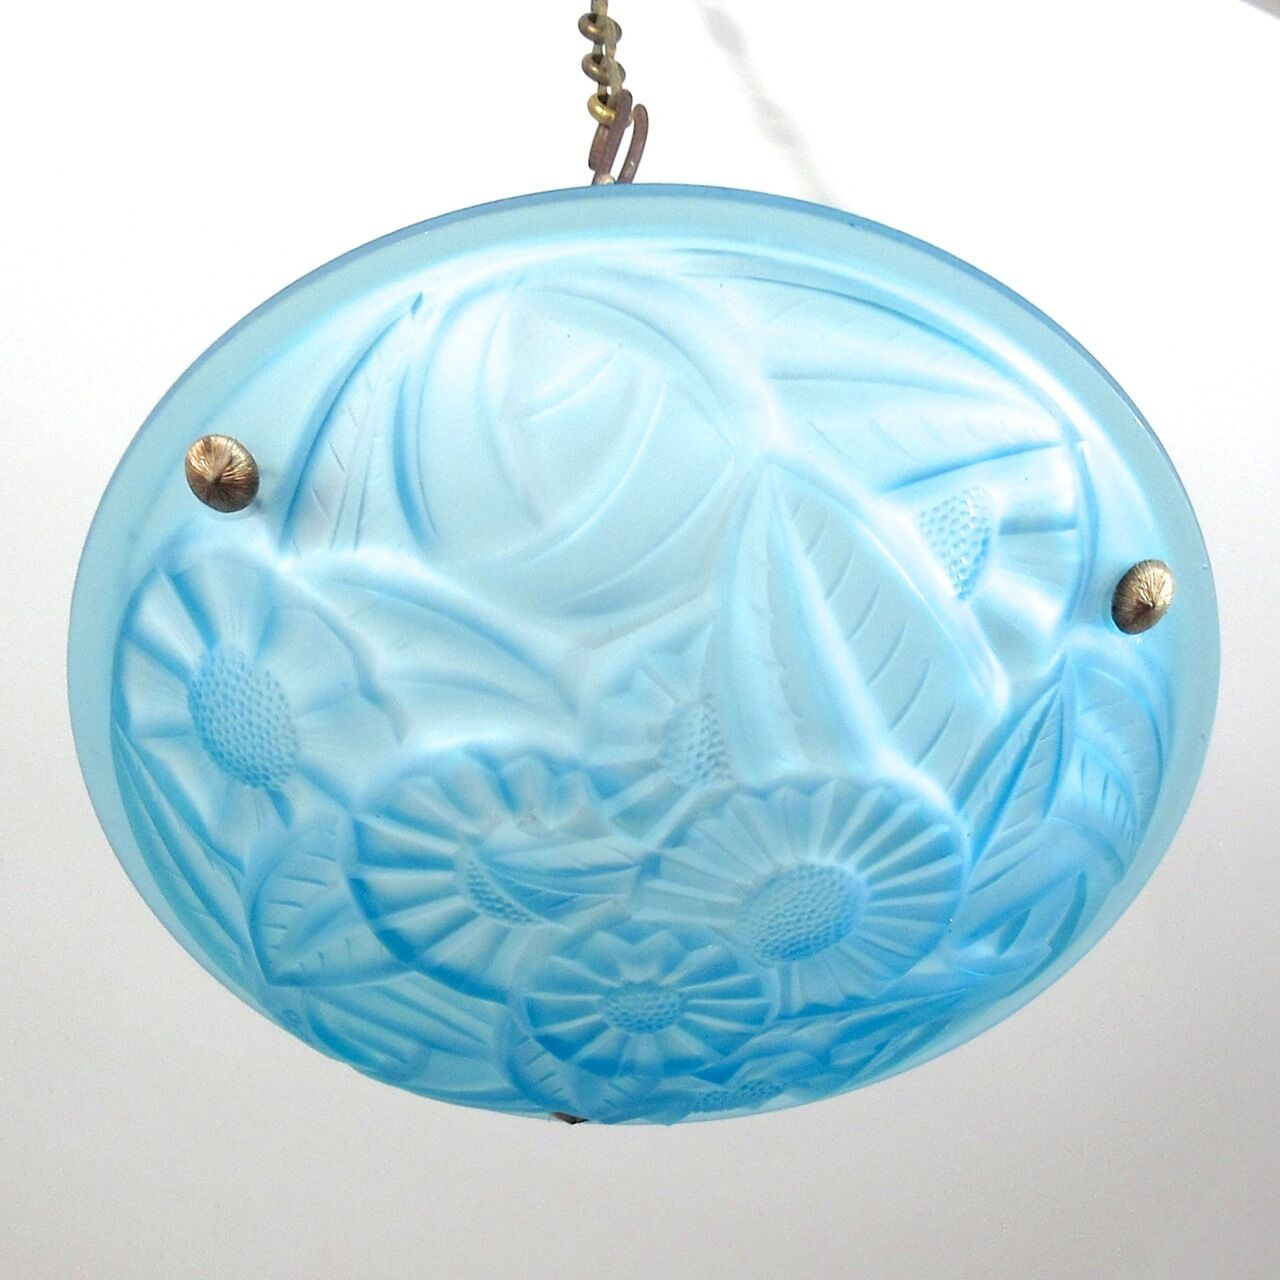 Vintage French Art Deco Blue Glass Chandelier Ceiling Lamp Signed Degué